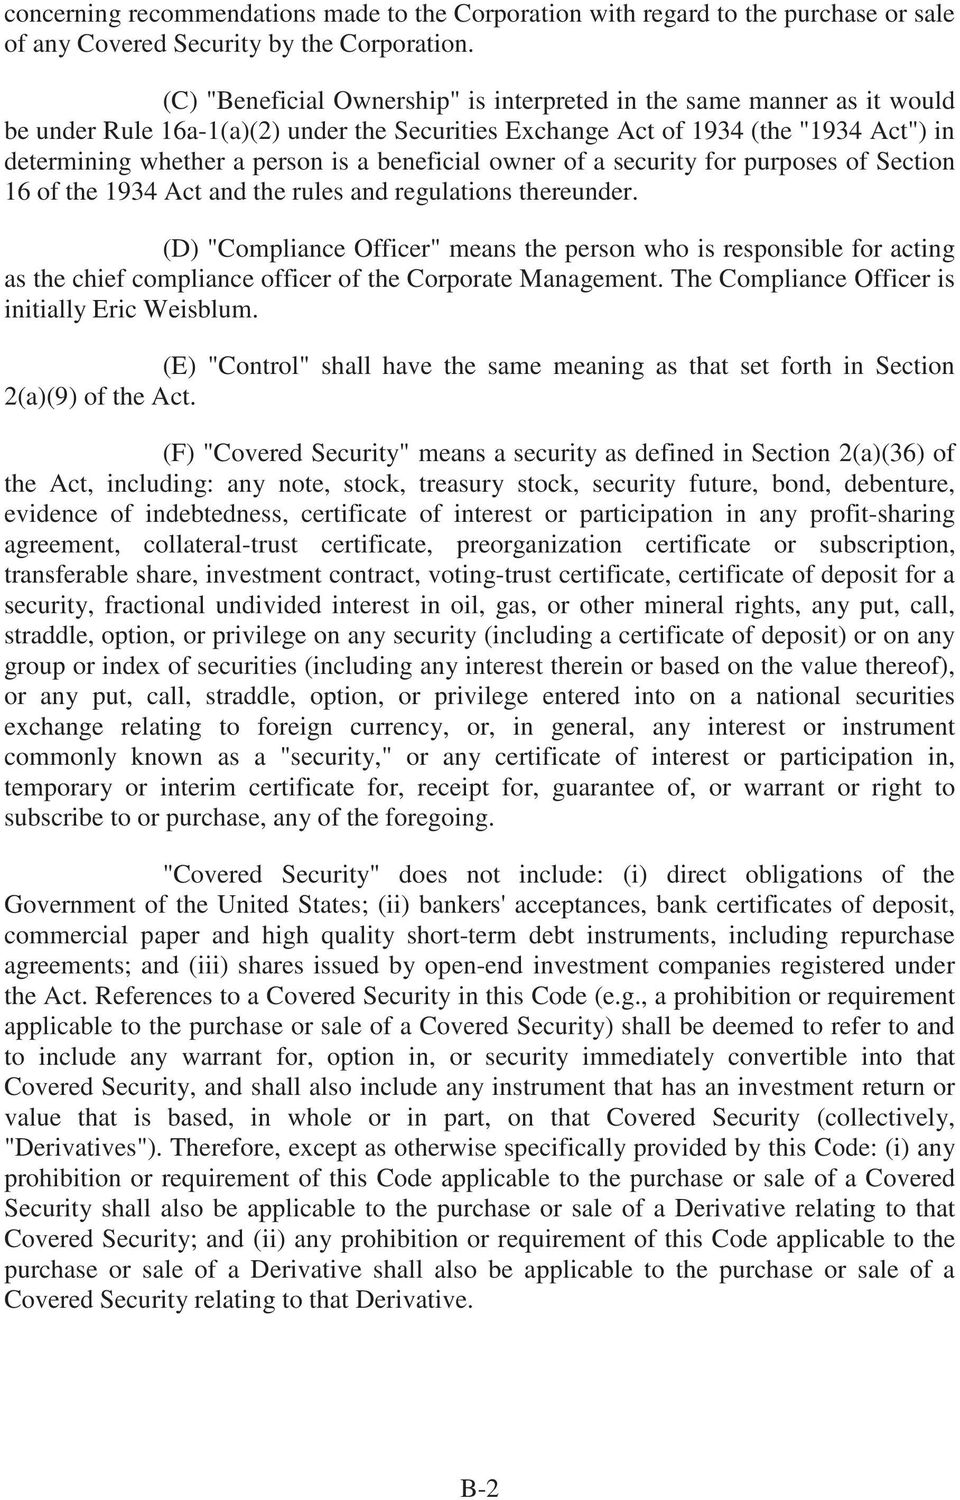 beneficial owner of a security for purposes of Section 16 of the 1934 Act and the rules and regulations thereunder.